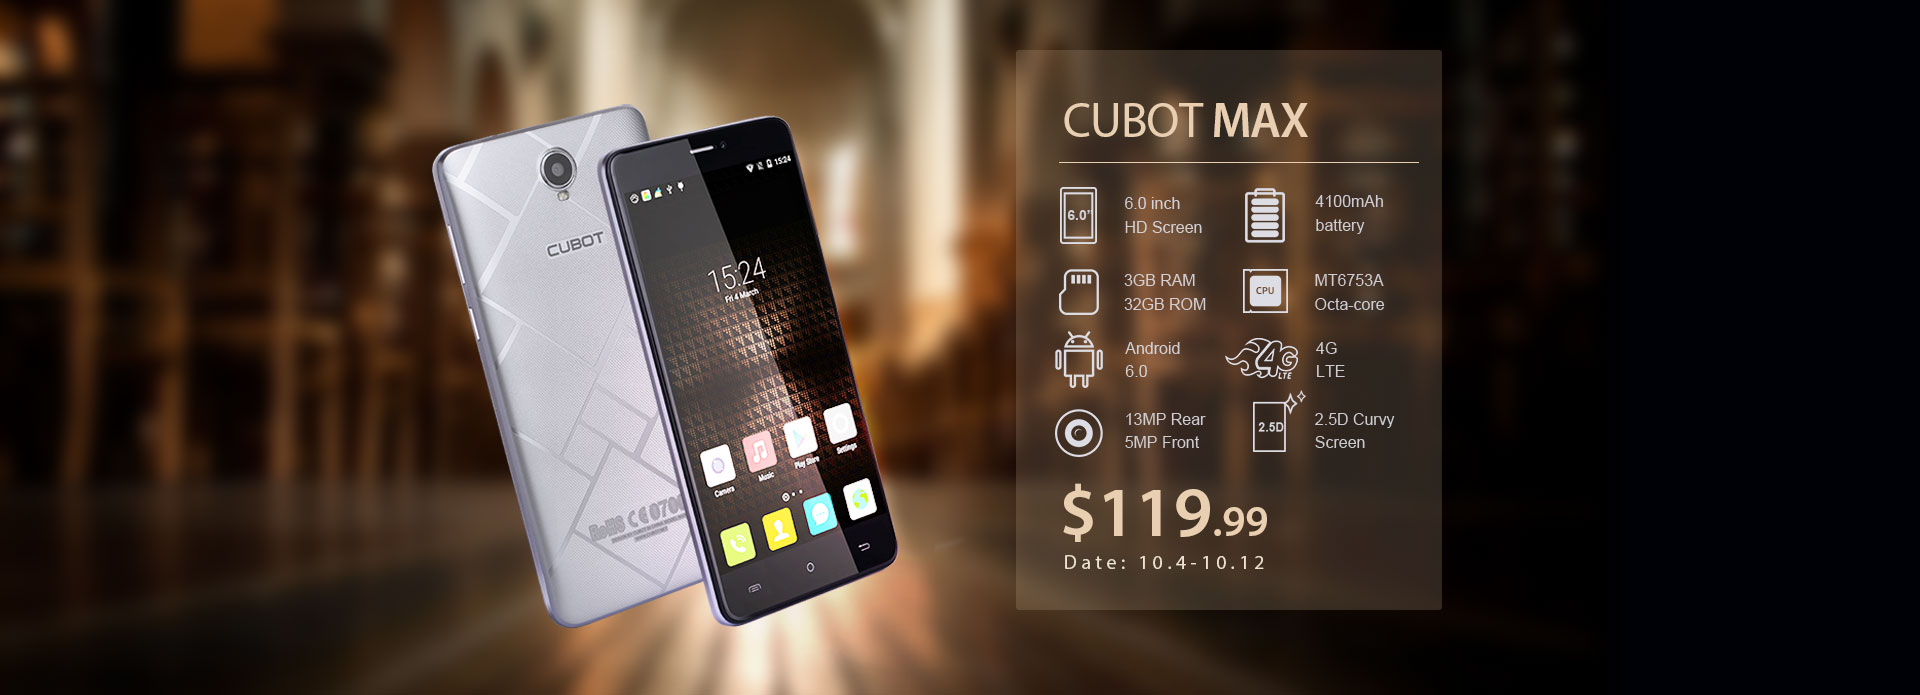 https://uidesign.gearbest.com/GB/images/promotion/2016/cubot_max2/a.jpg